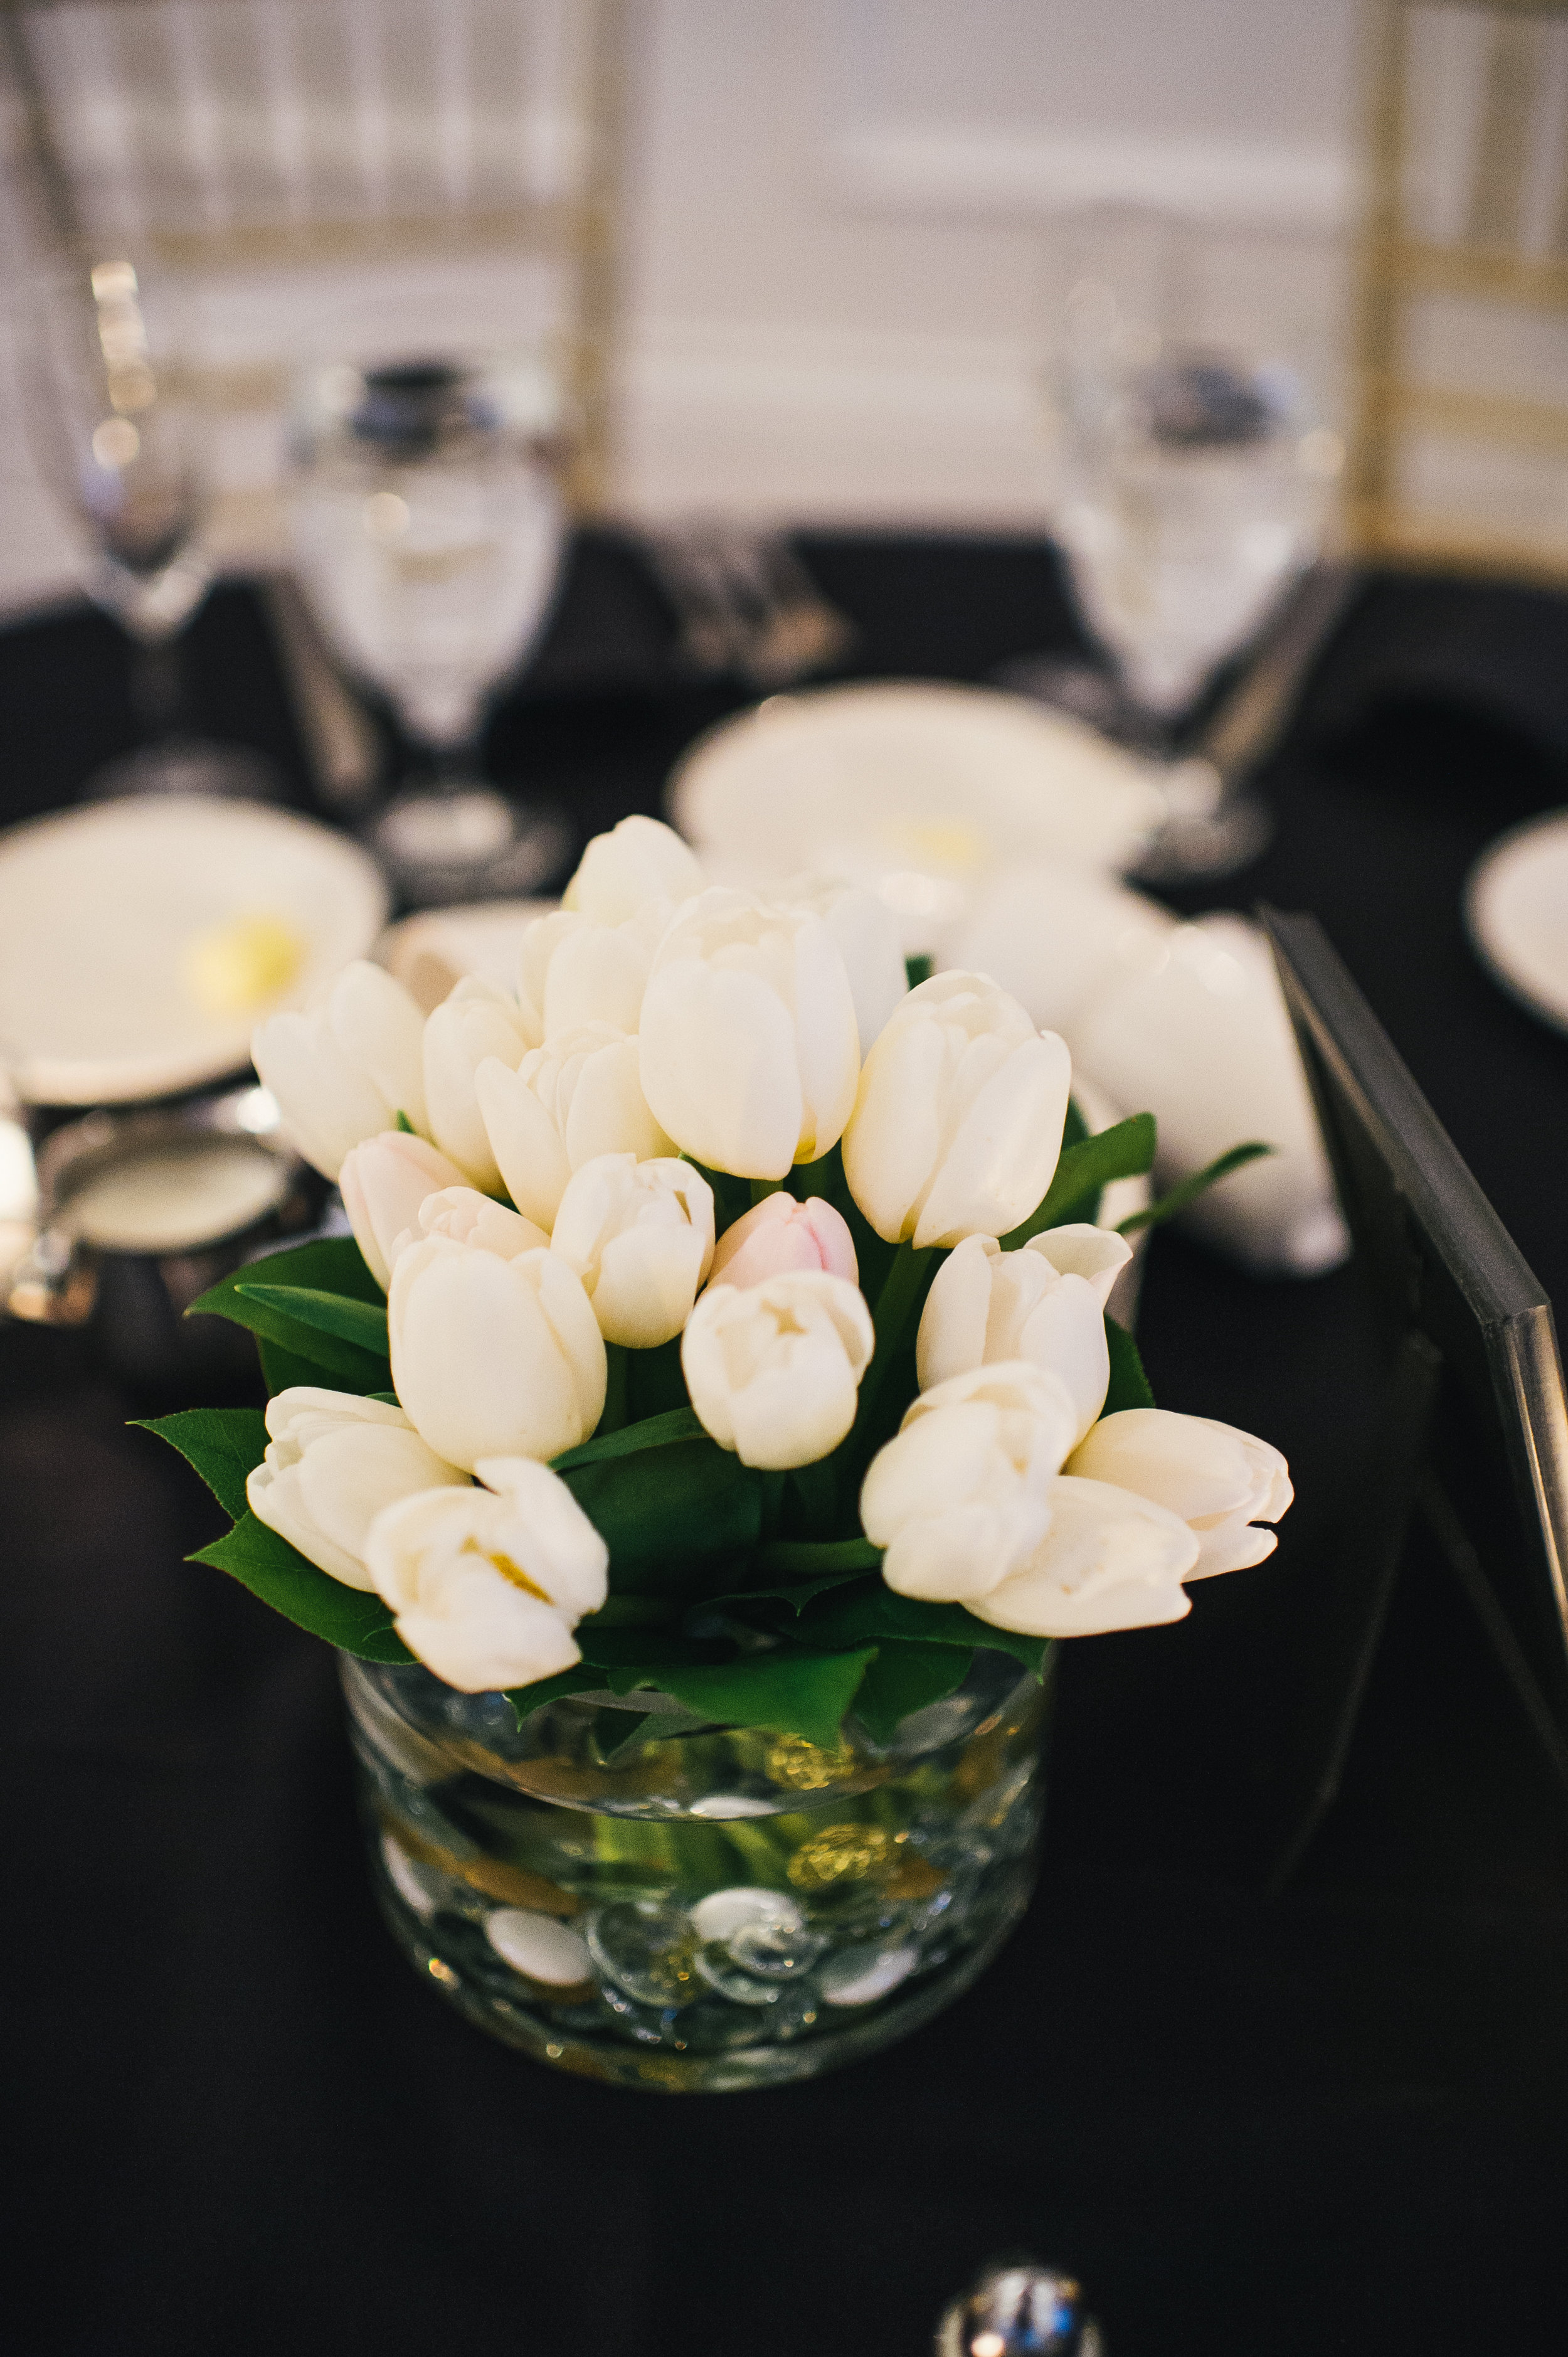 White wedding flower centerpieces for black, white, and gold wedding in Buffalo, NY planned by Exhale Events. Find more wedding inspiration at exhale-events.com!